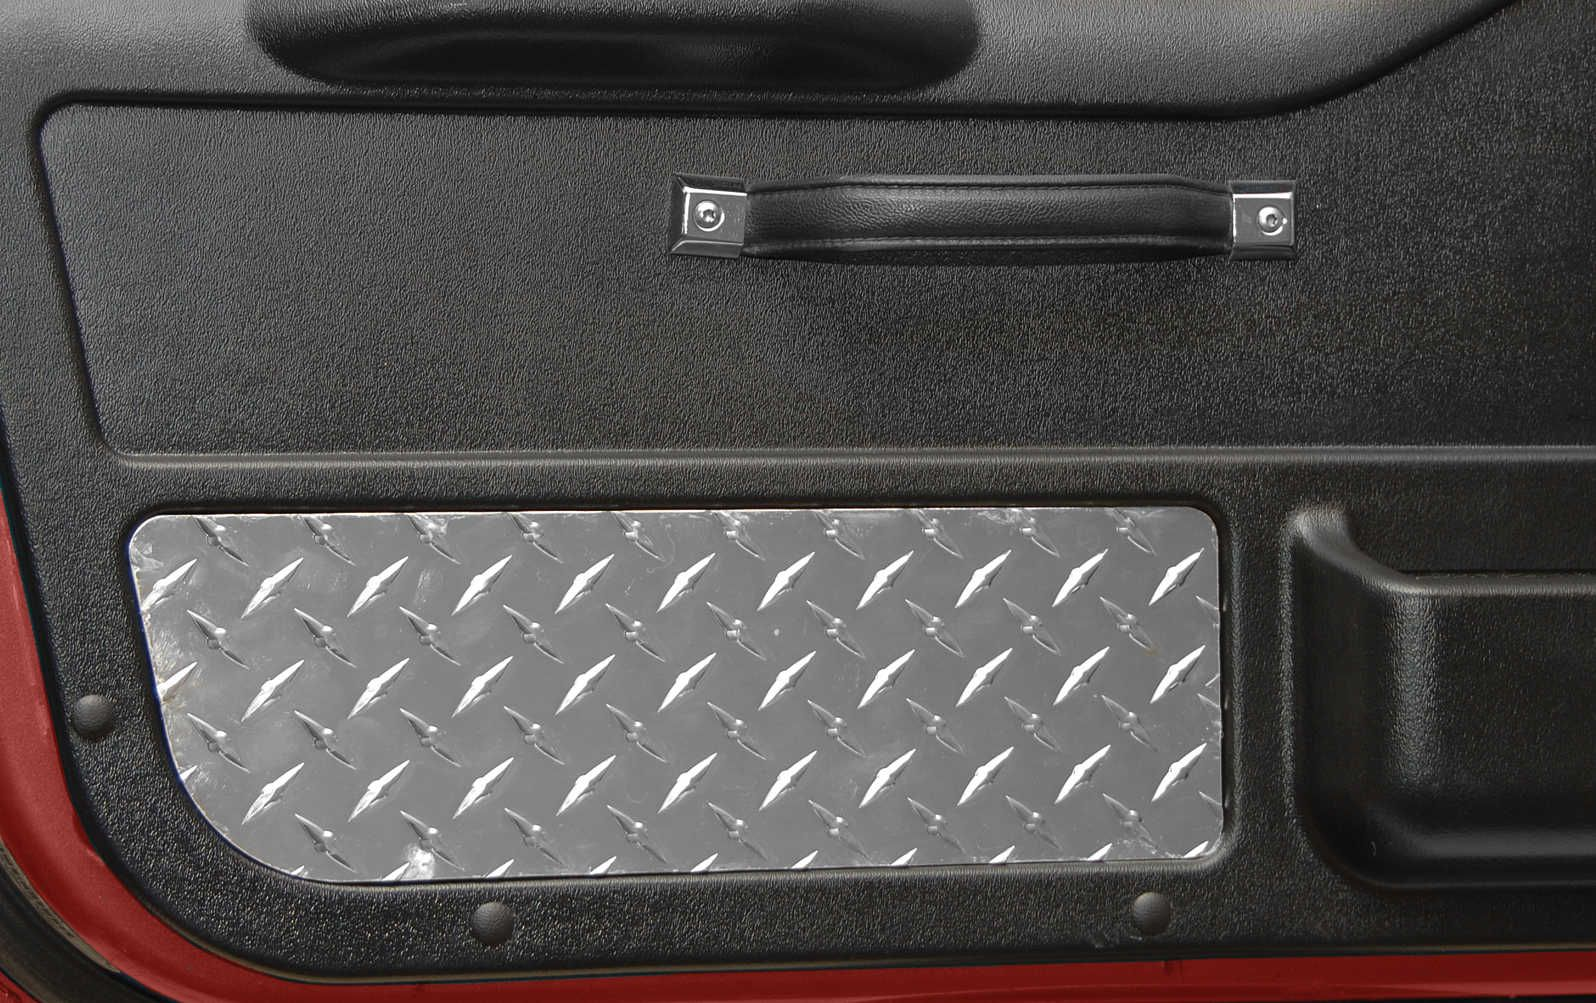 Gauge Works 90 001 Replacement Door Panels With Diamond Plate Inserts For 87 95 Jeep Wrangler Yj 1 2 Steel Doors Jeep Wrangler Yj Jeep Diamond Plate